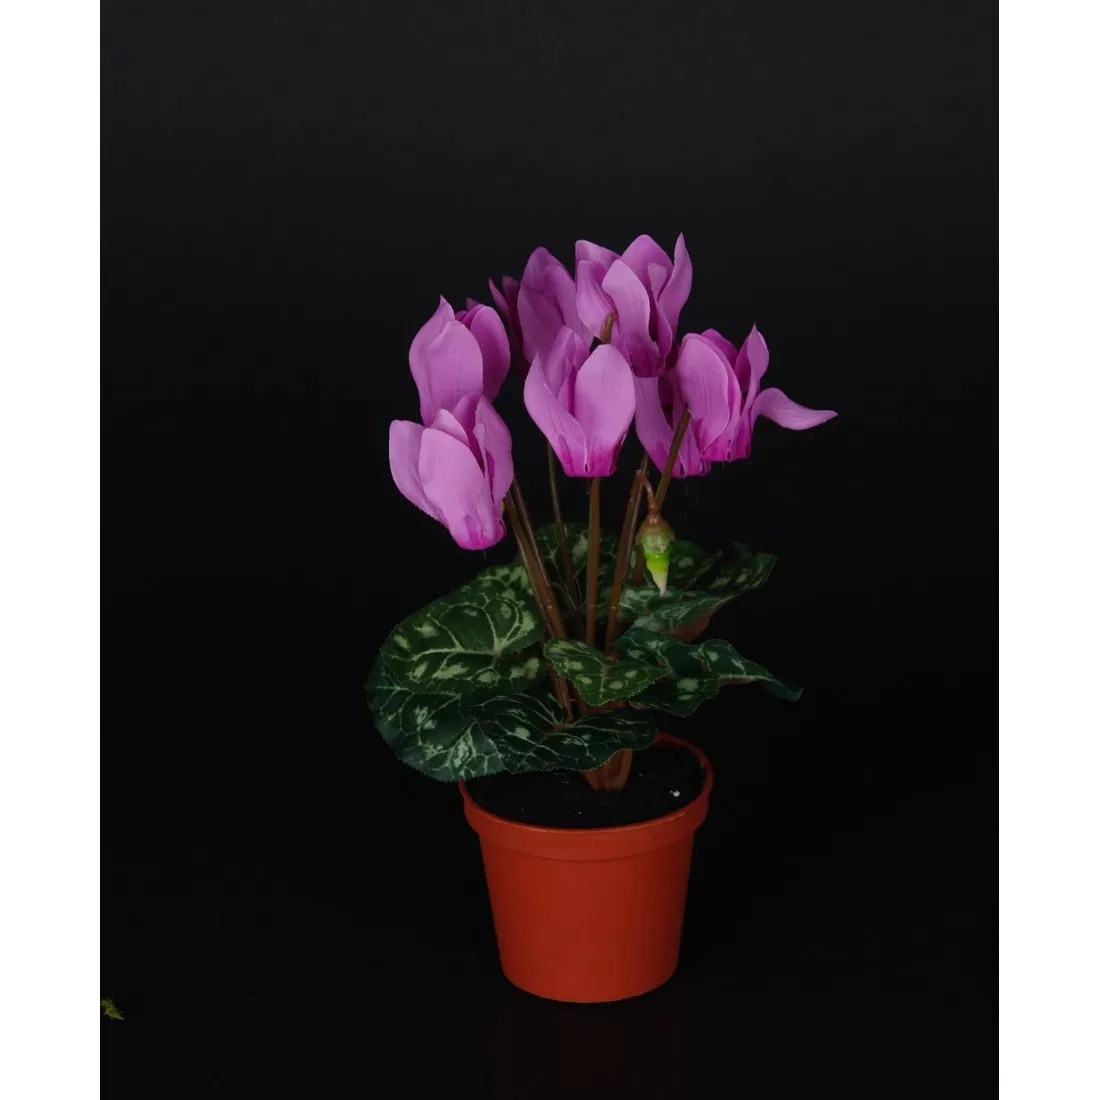 Entretien Cyclamen Cyclamen Mini Artificiel 21 Cm En Pot Plantes Fleuries